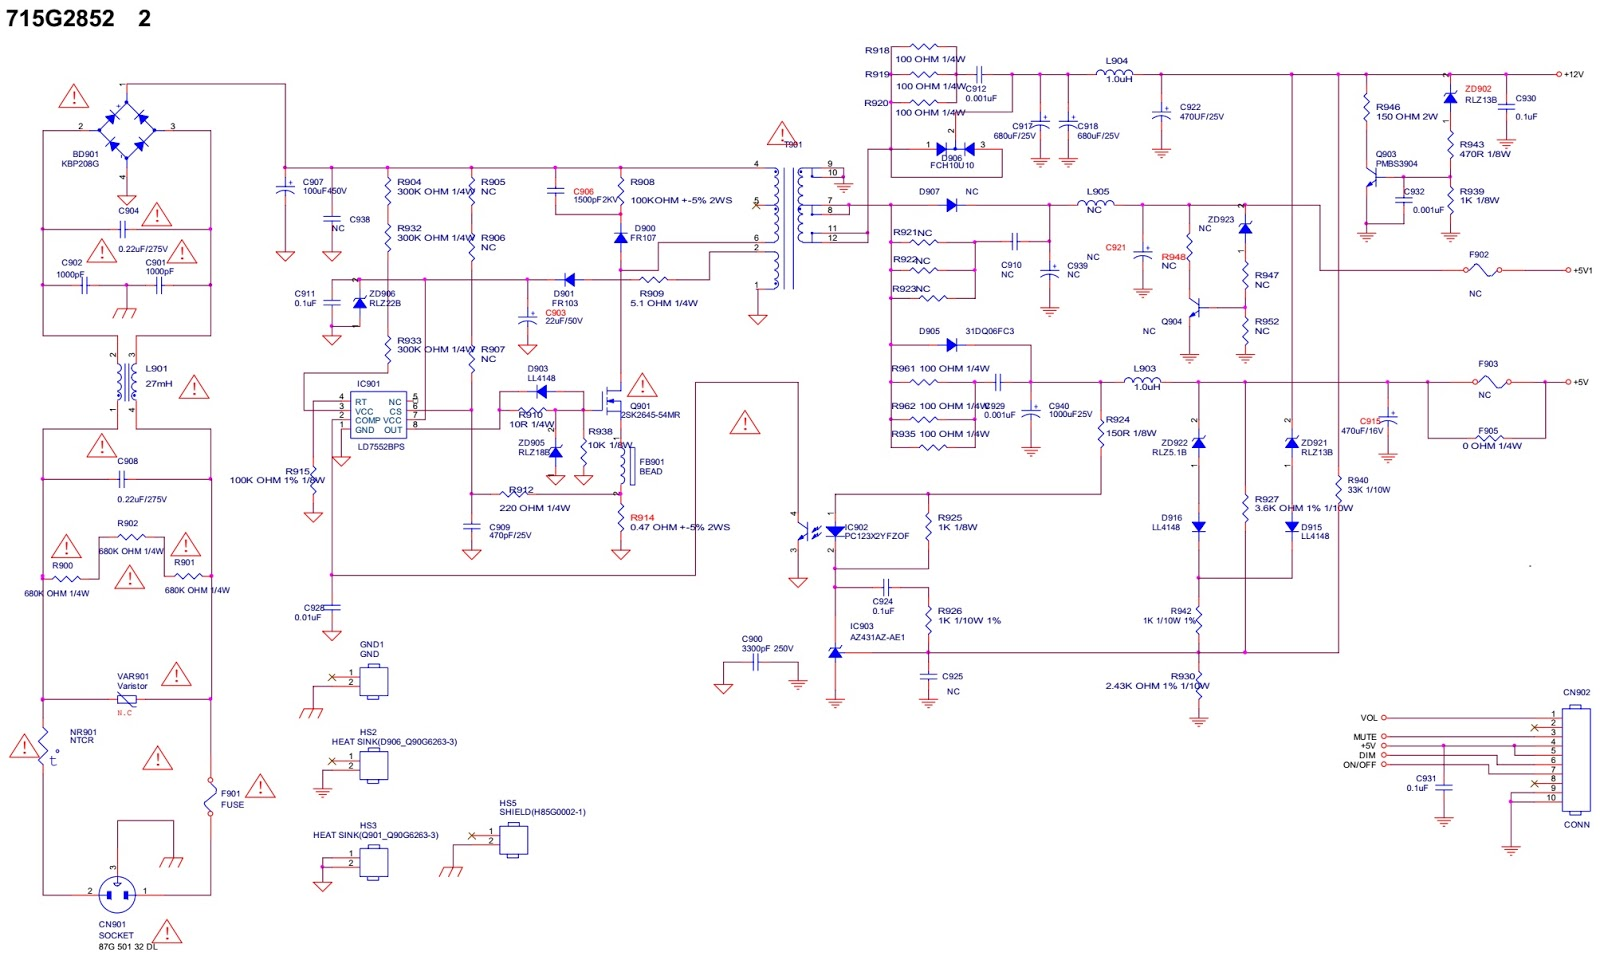 Hcl And Samsung 15 Inch Lcd Monitor How To Enter The Service Mode Smps Inverter Circuit 715g2852 2 Board Diagram Schematic Pwb Back Light